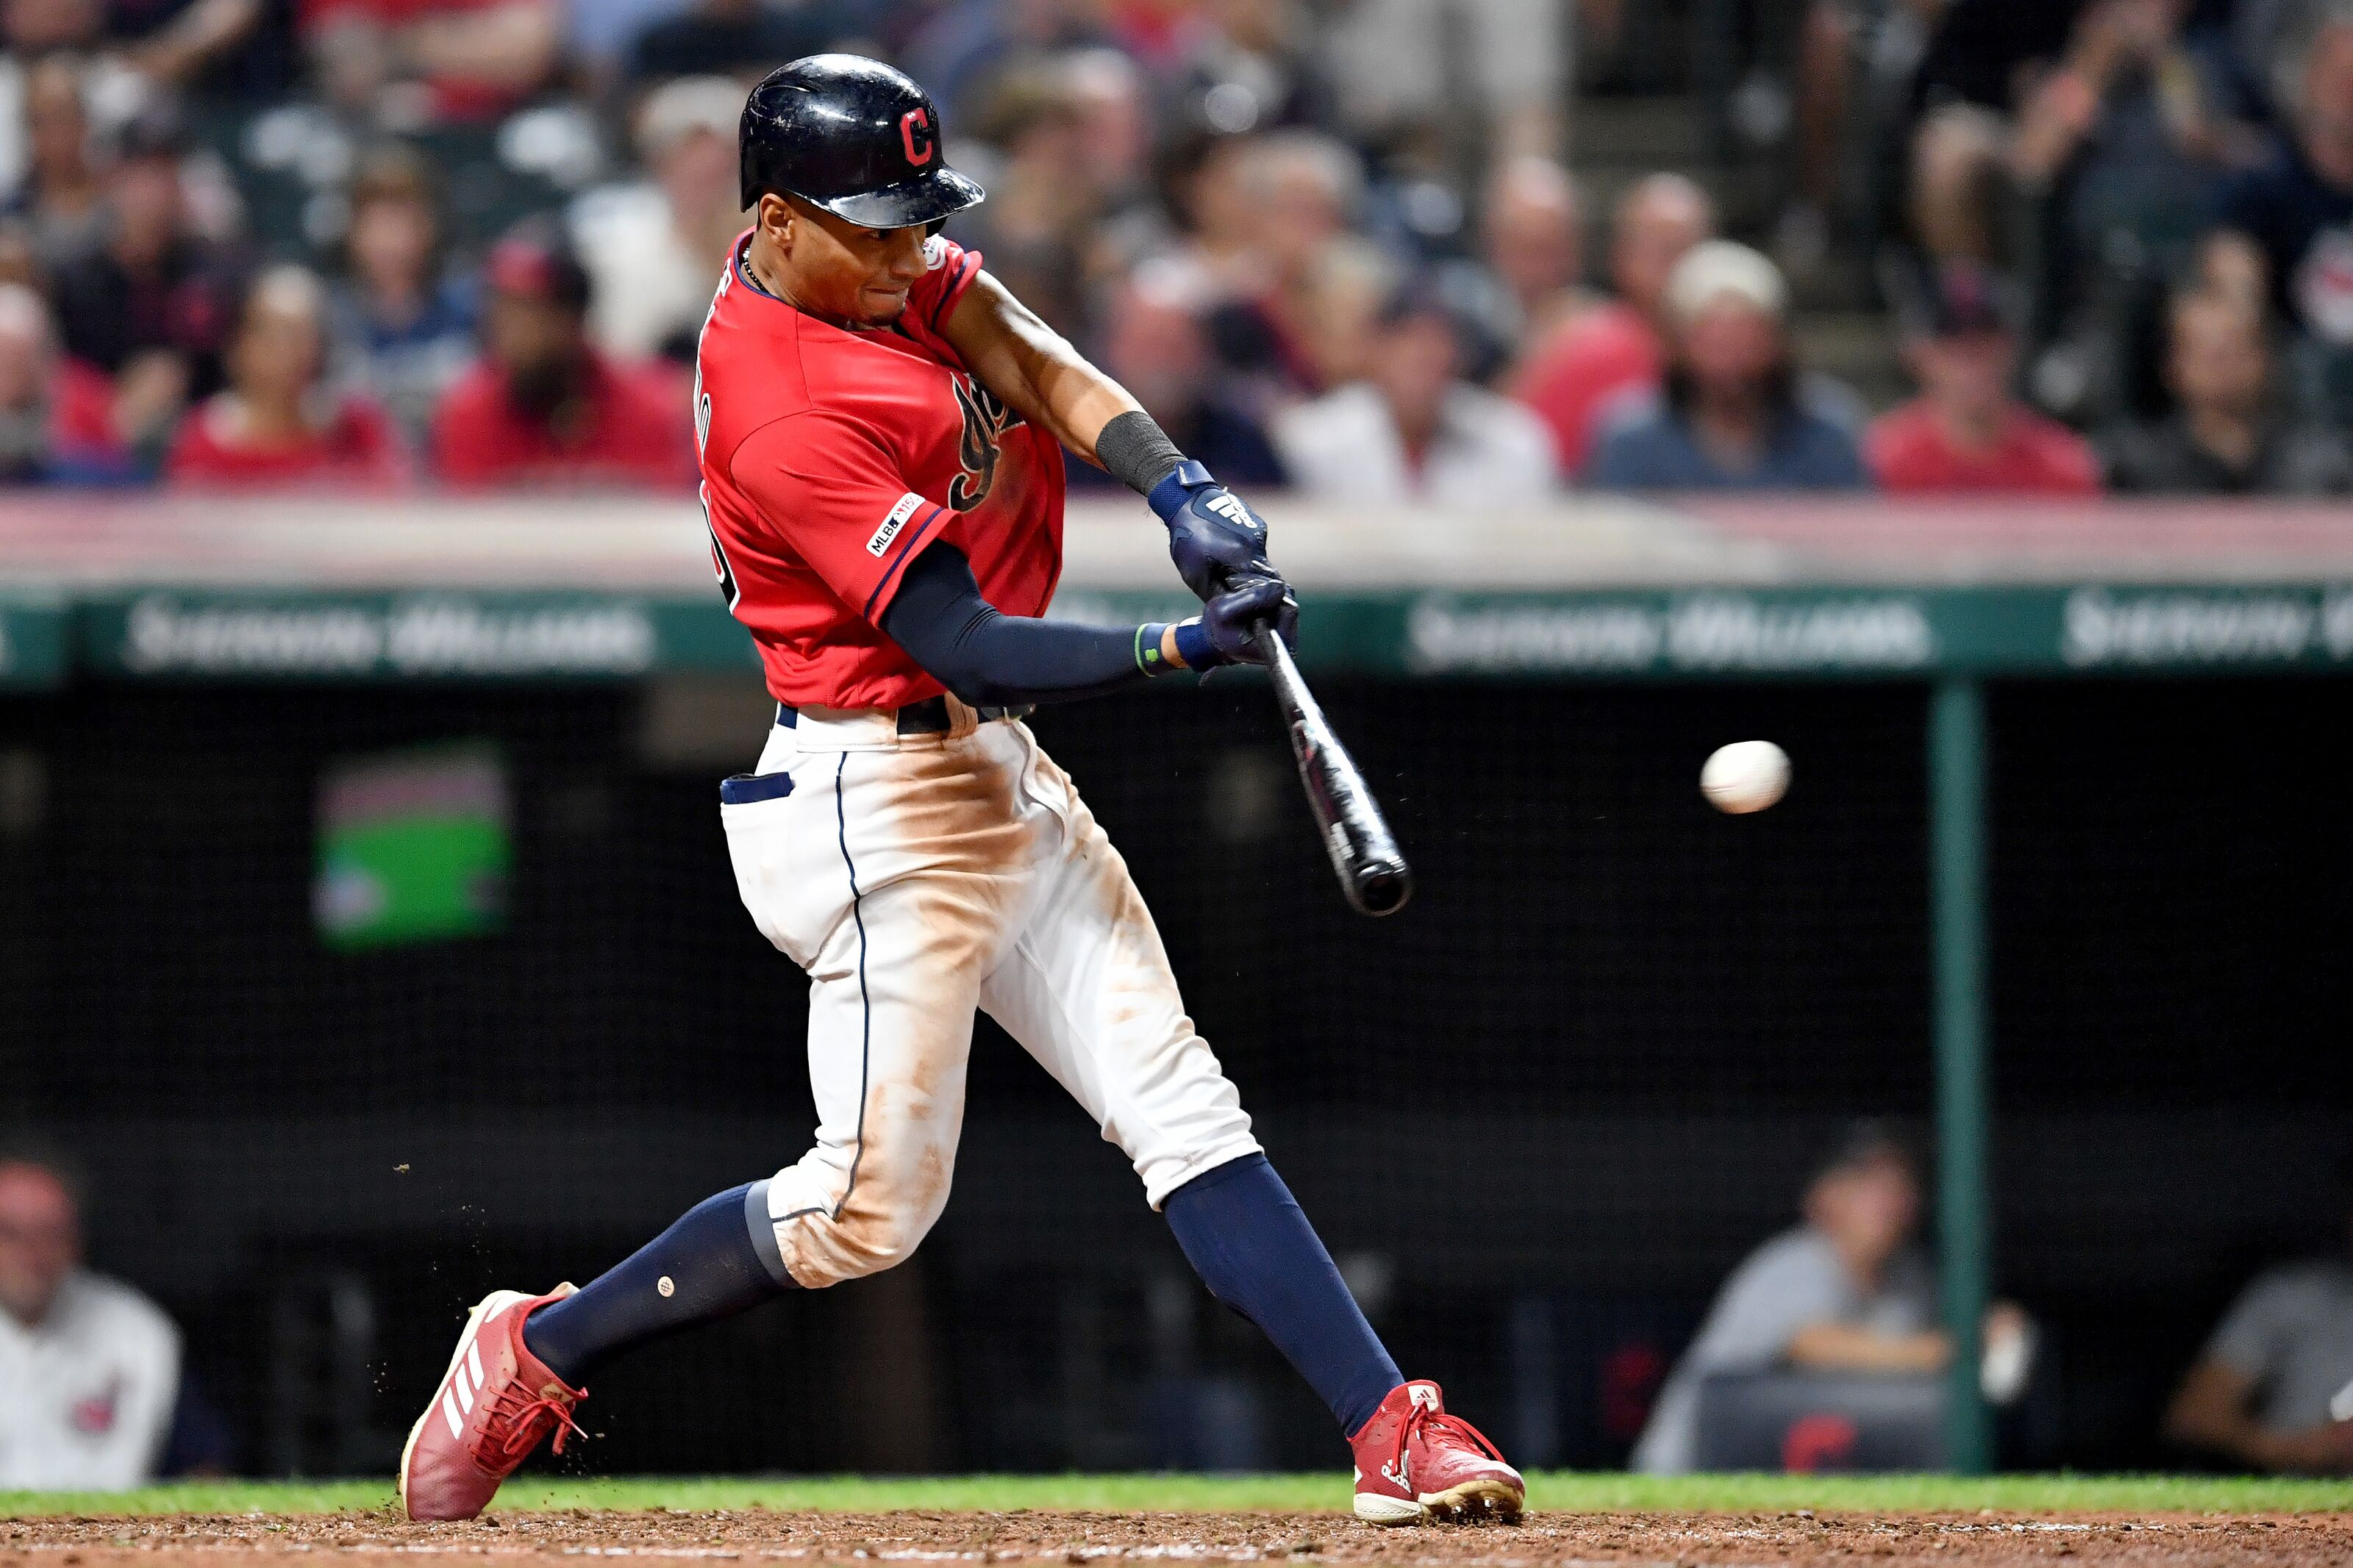 Cleveland Indians: What does a year-two leap for Mercado look like?